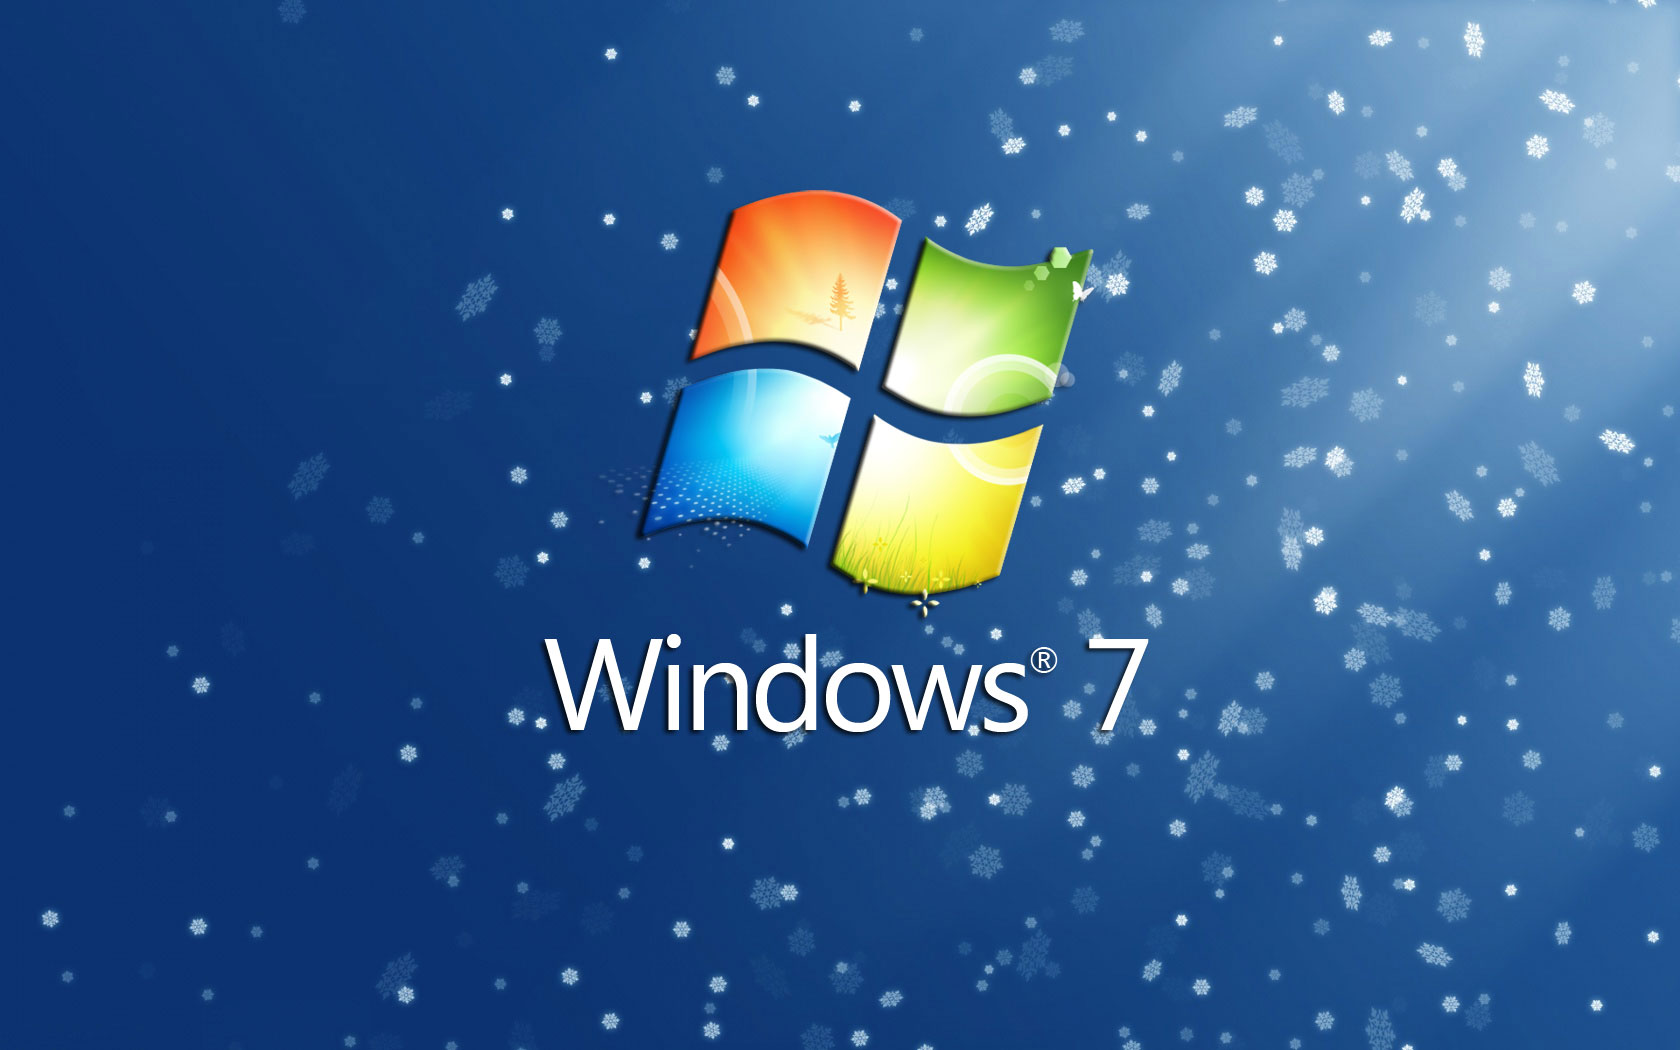 windows 7 christmas 2009randydorney on deviantart